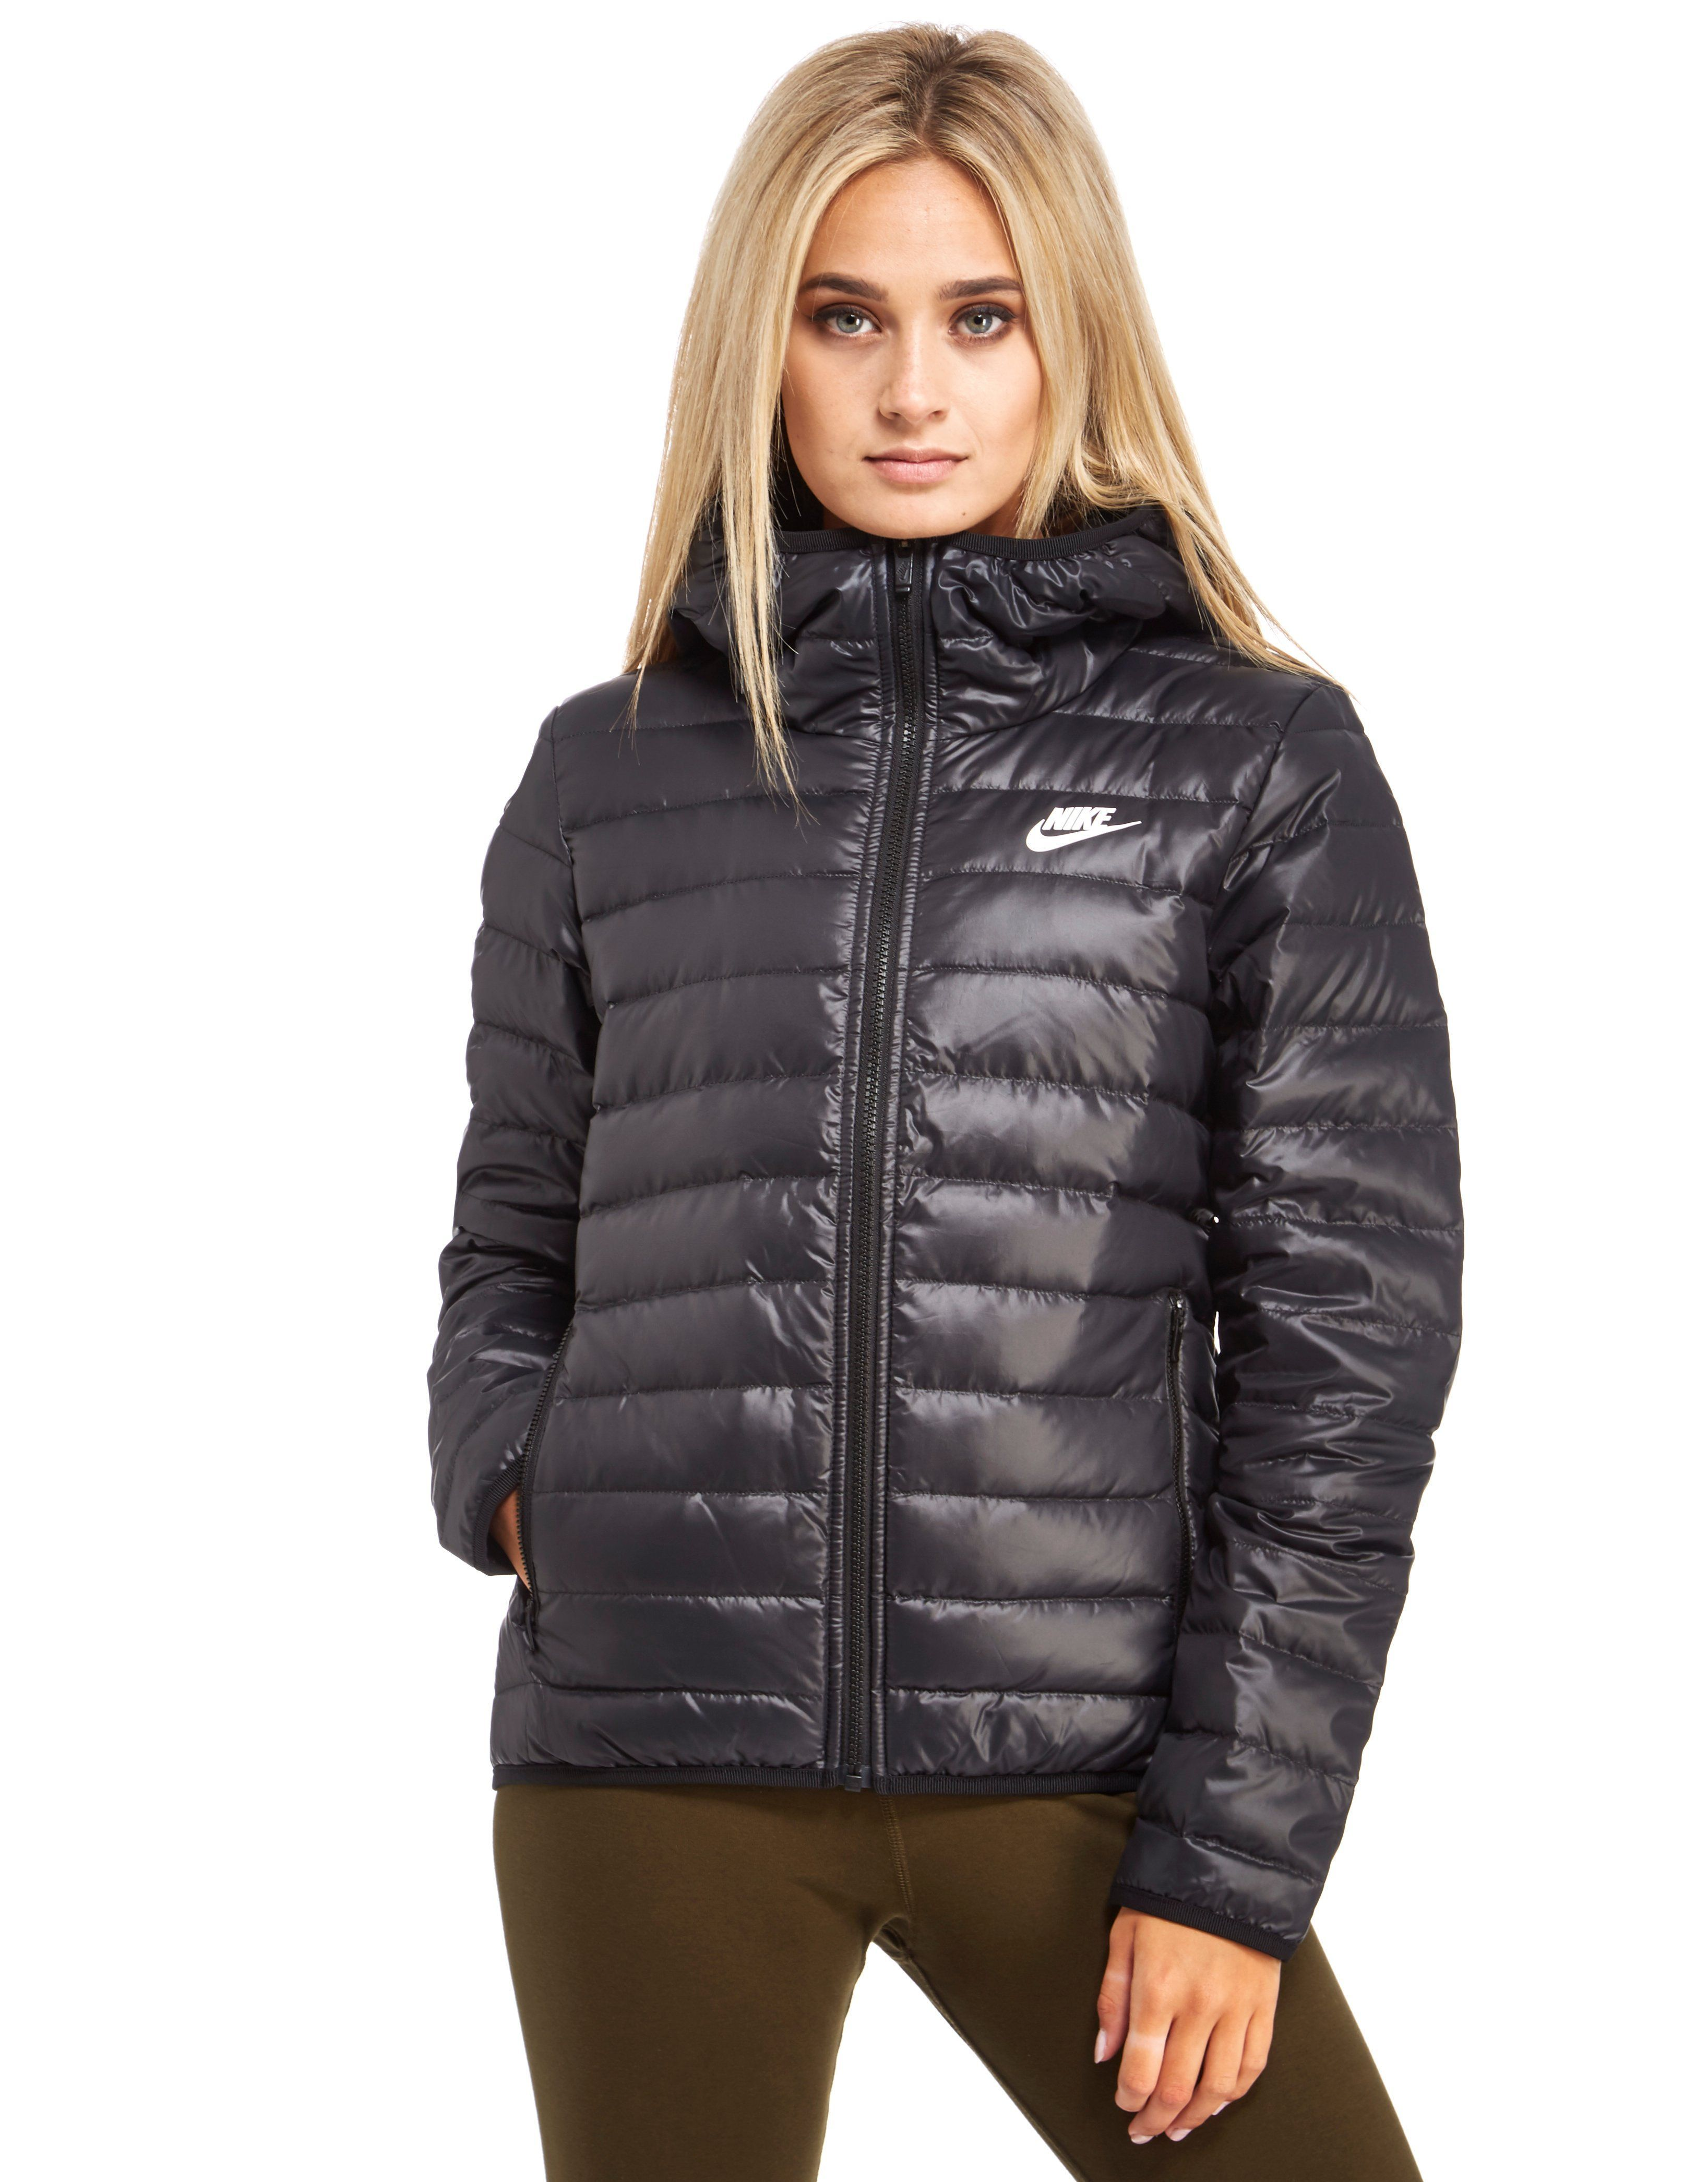 9615fee83 puffer jacket women's with fur hood | scurte in 2019 | Black nike ...